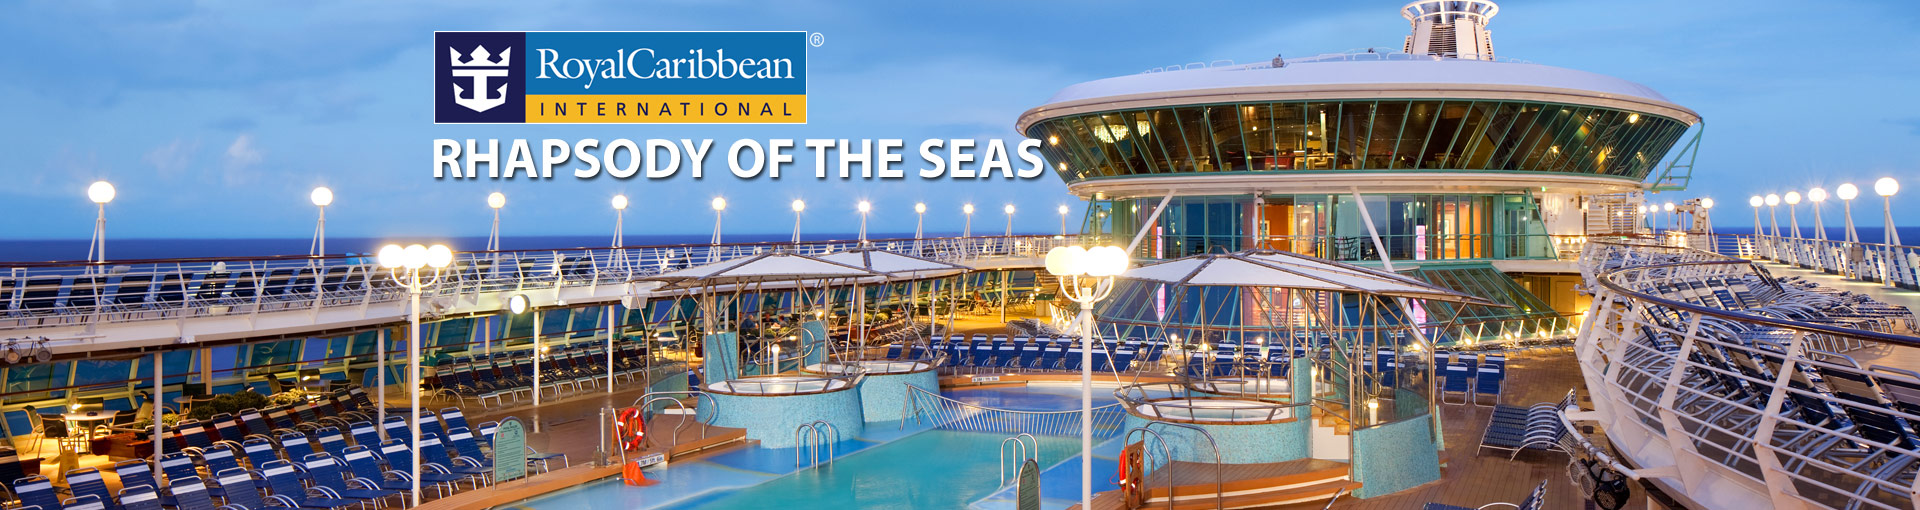 Royal Caribbean Rhapsody of the Seas